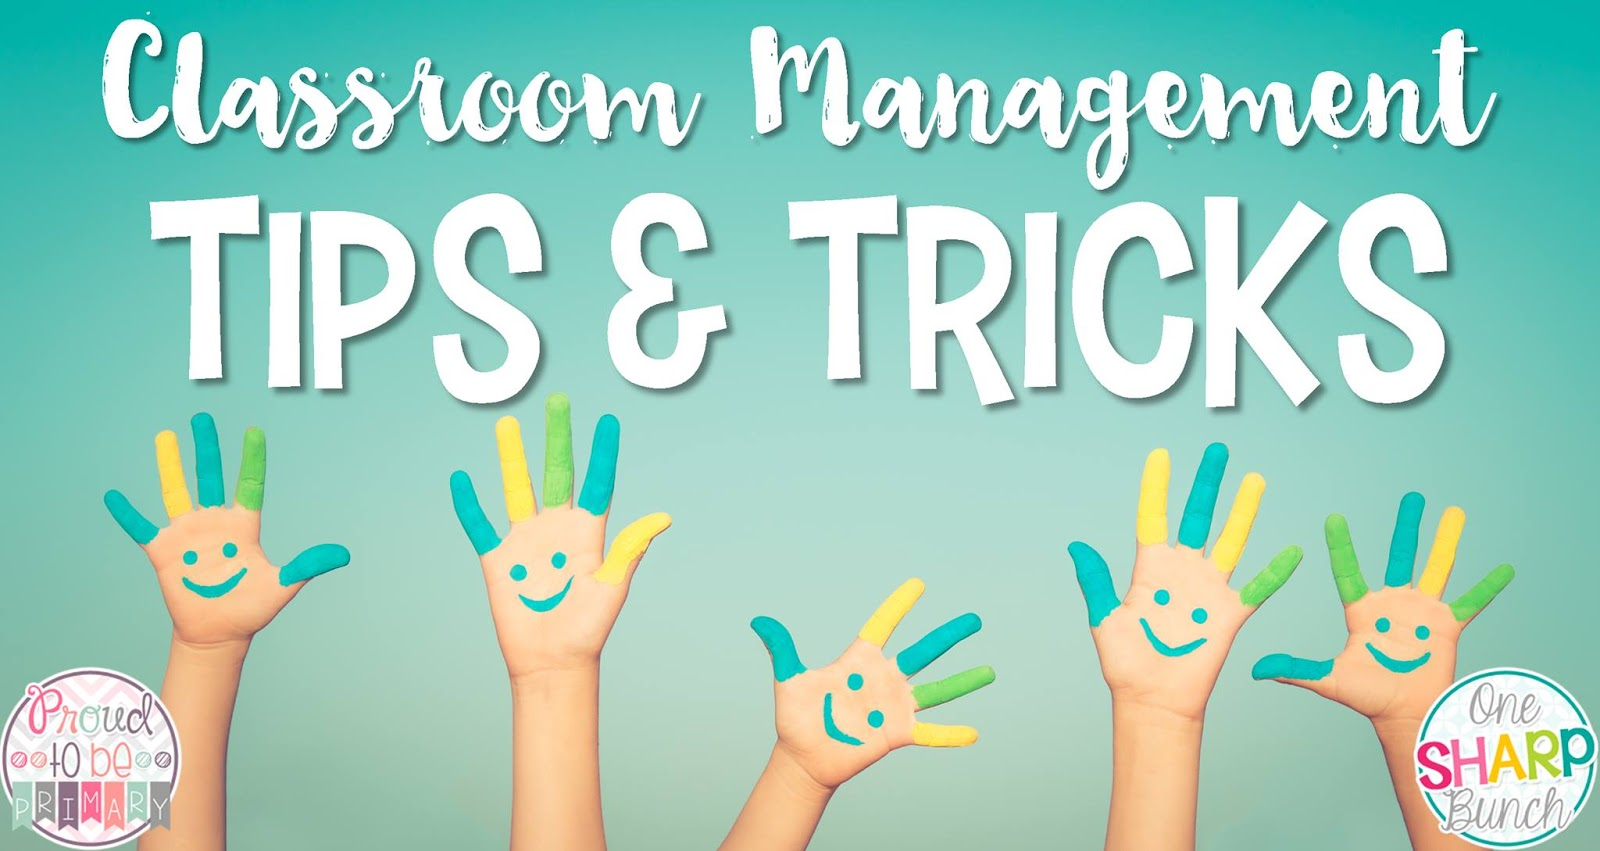 How Does Classroom Design And Organization Support Learning And Positive Behavior ~ One sharp bunch classroom management tips tricks